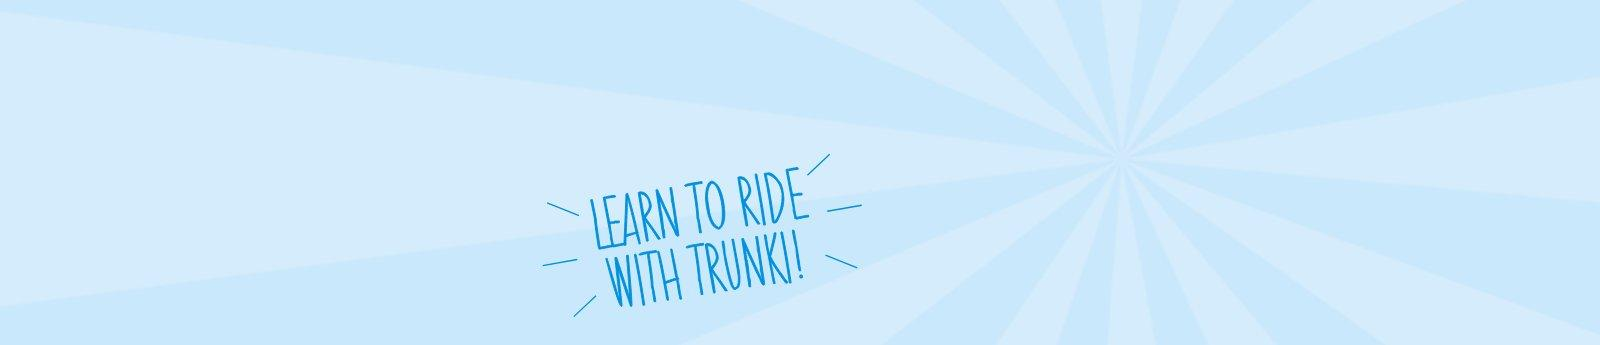 Learn to ride with Trunki